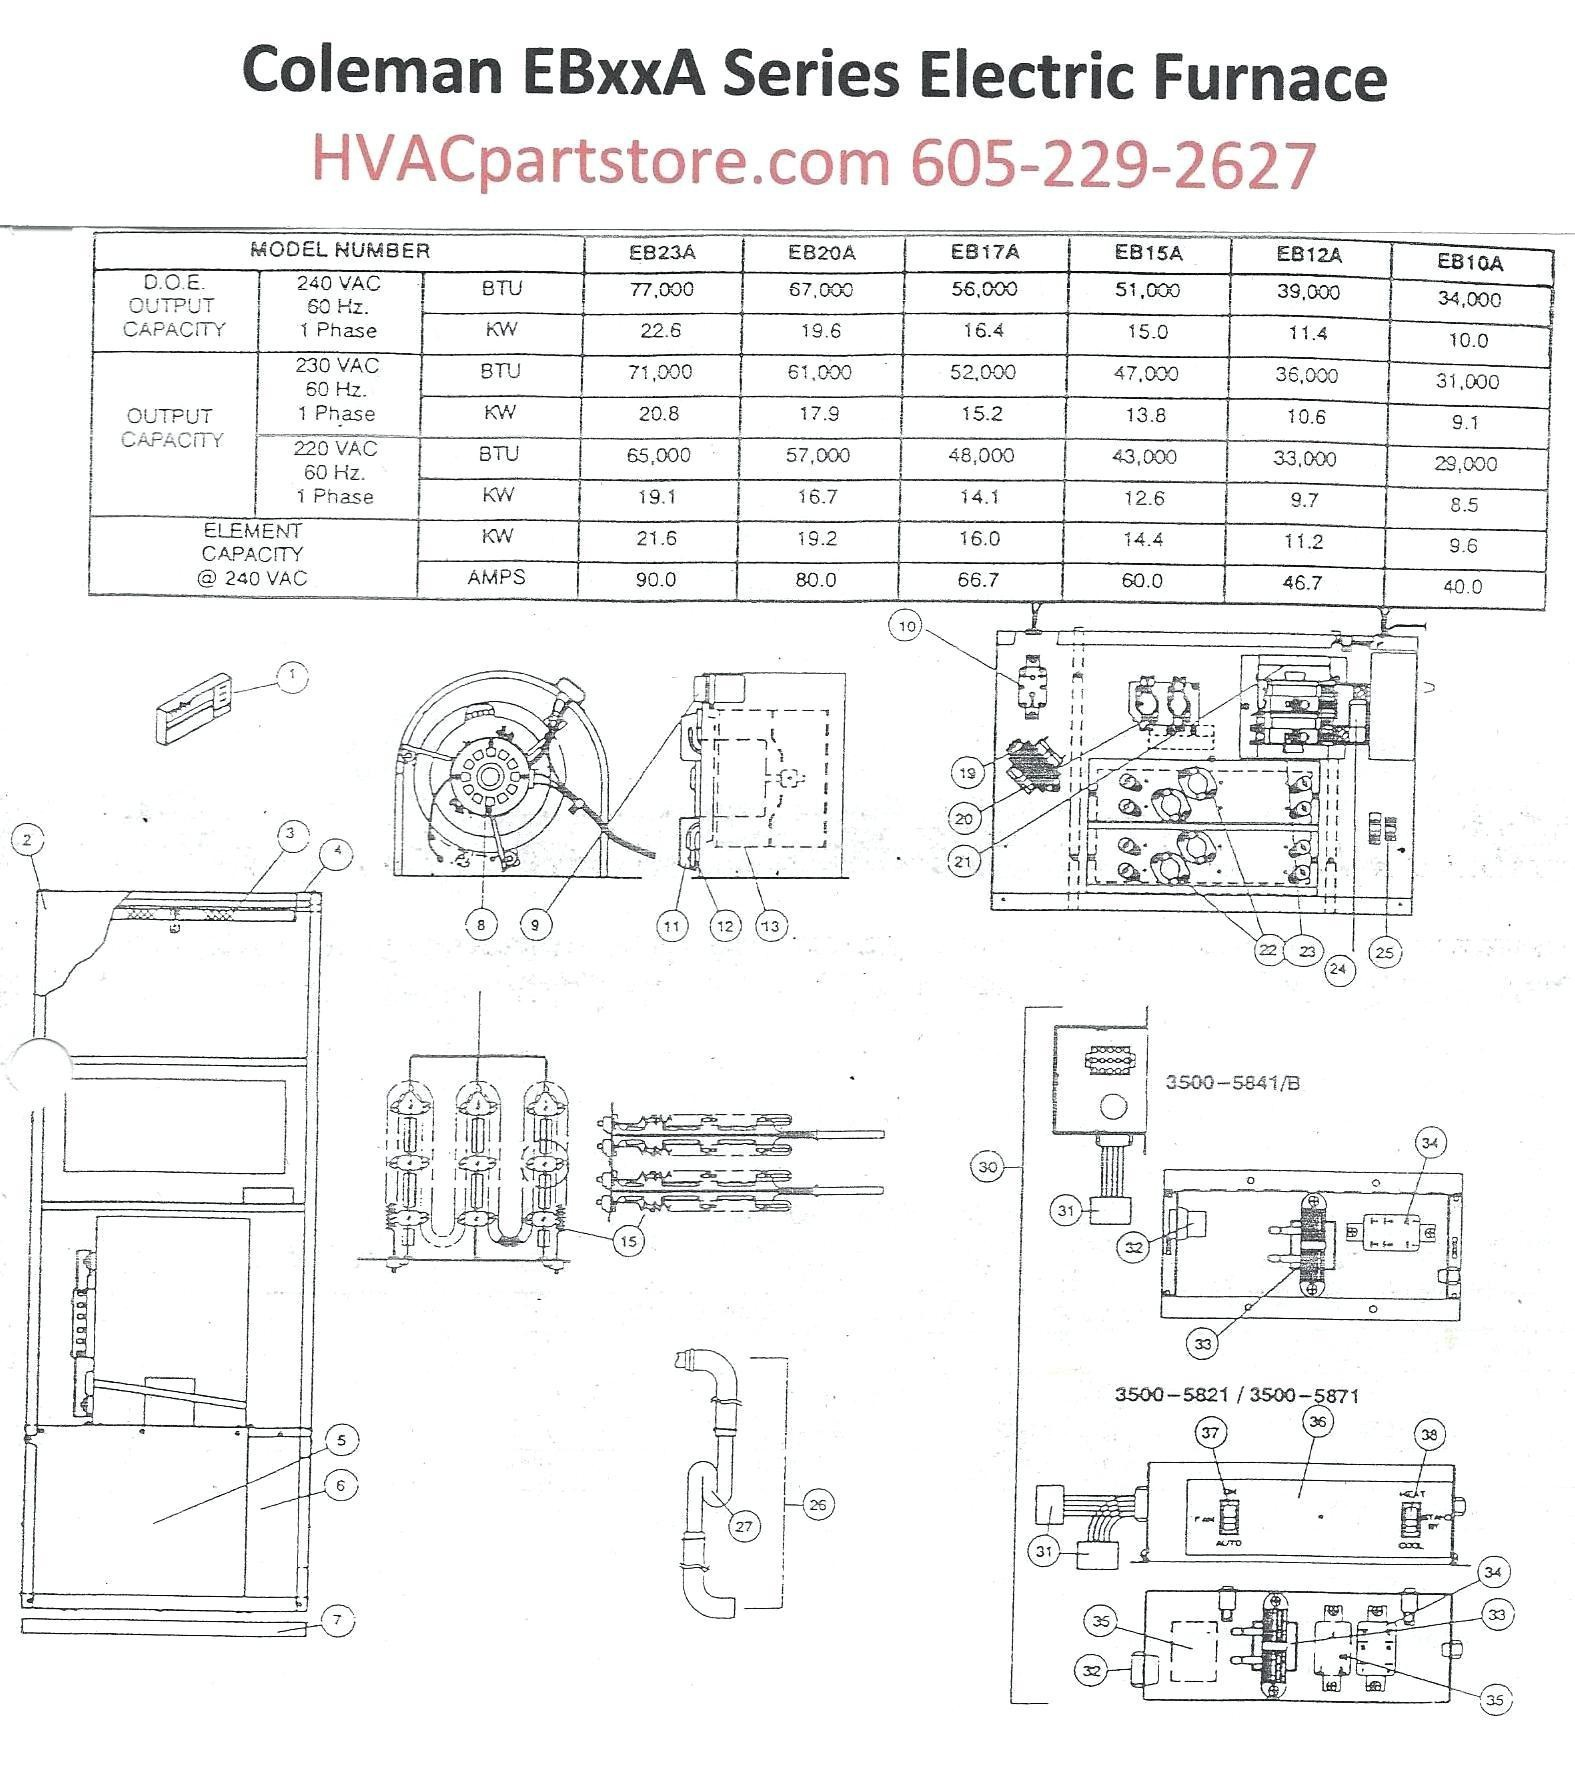 York Electric Furnace Wiring Diagram Best York Gas Furnace Wiring Diagram Inspirationa Coleman Electric